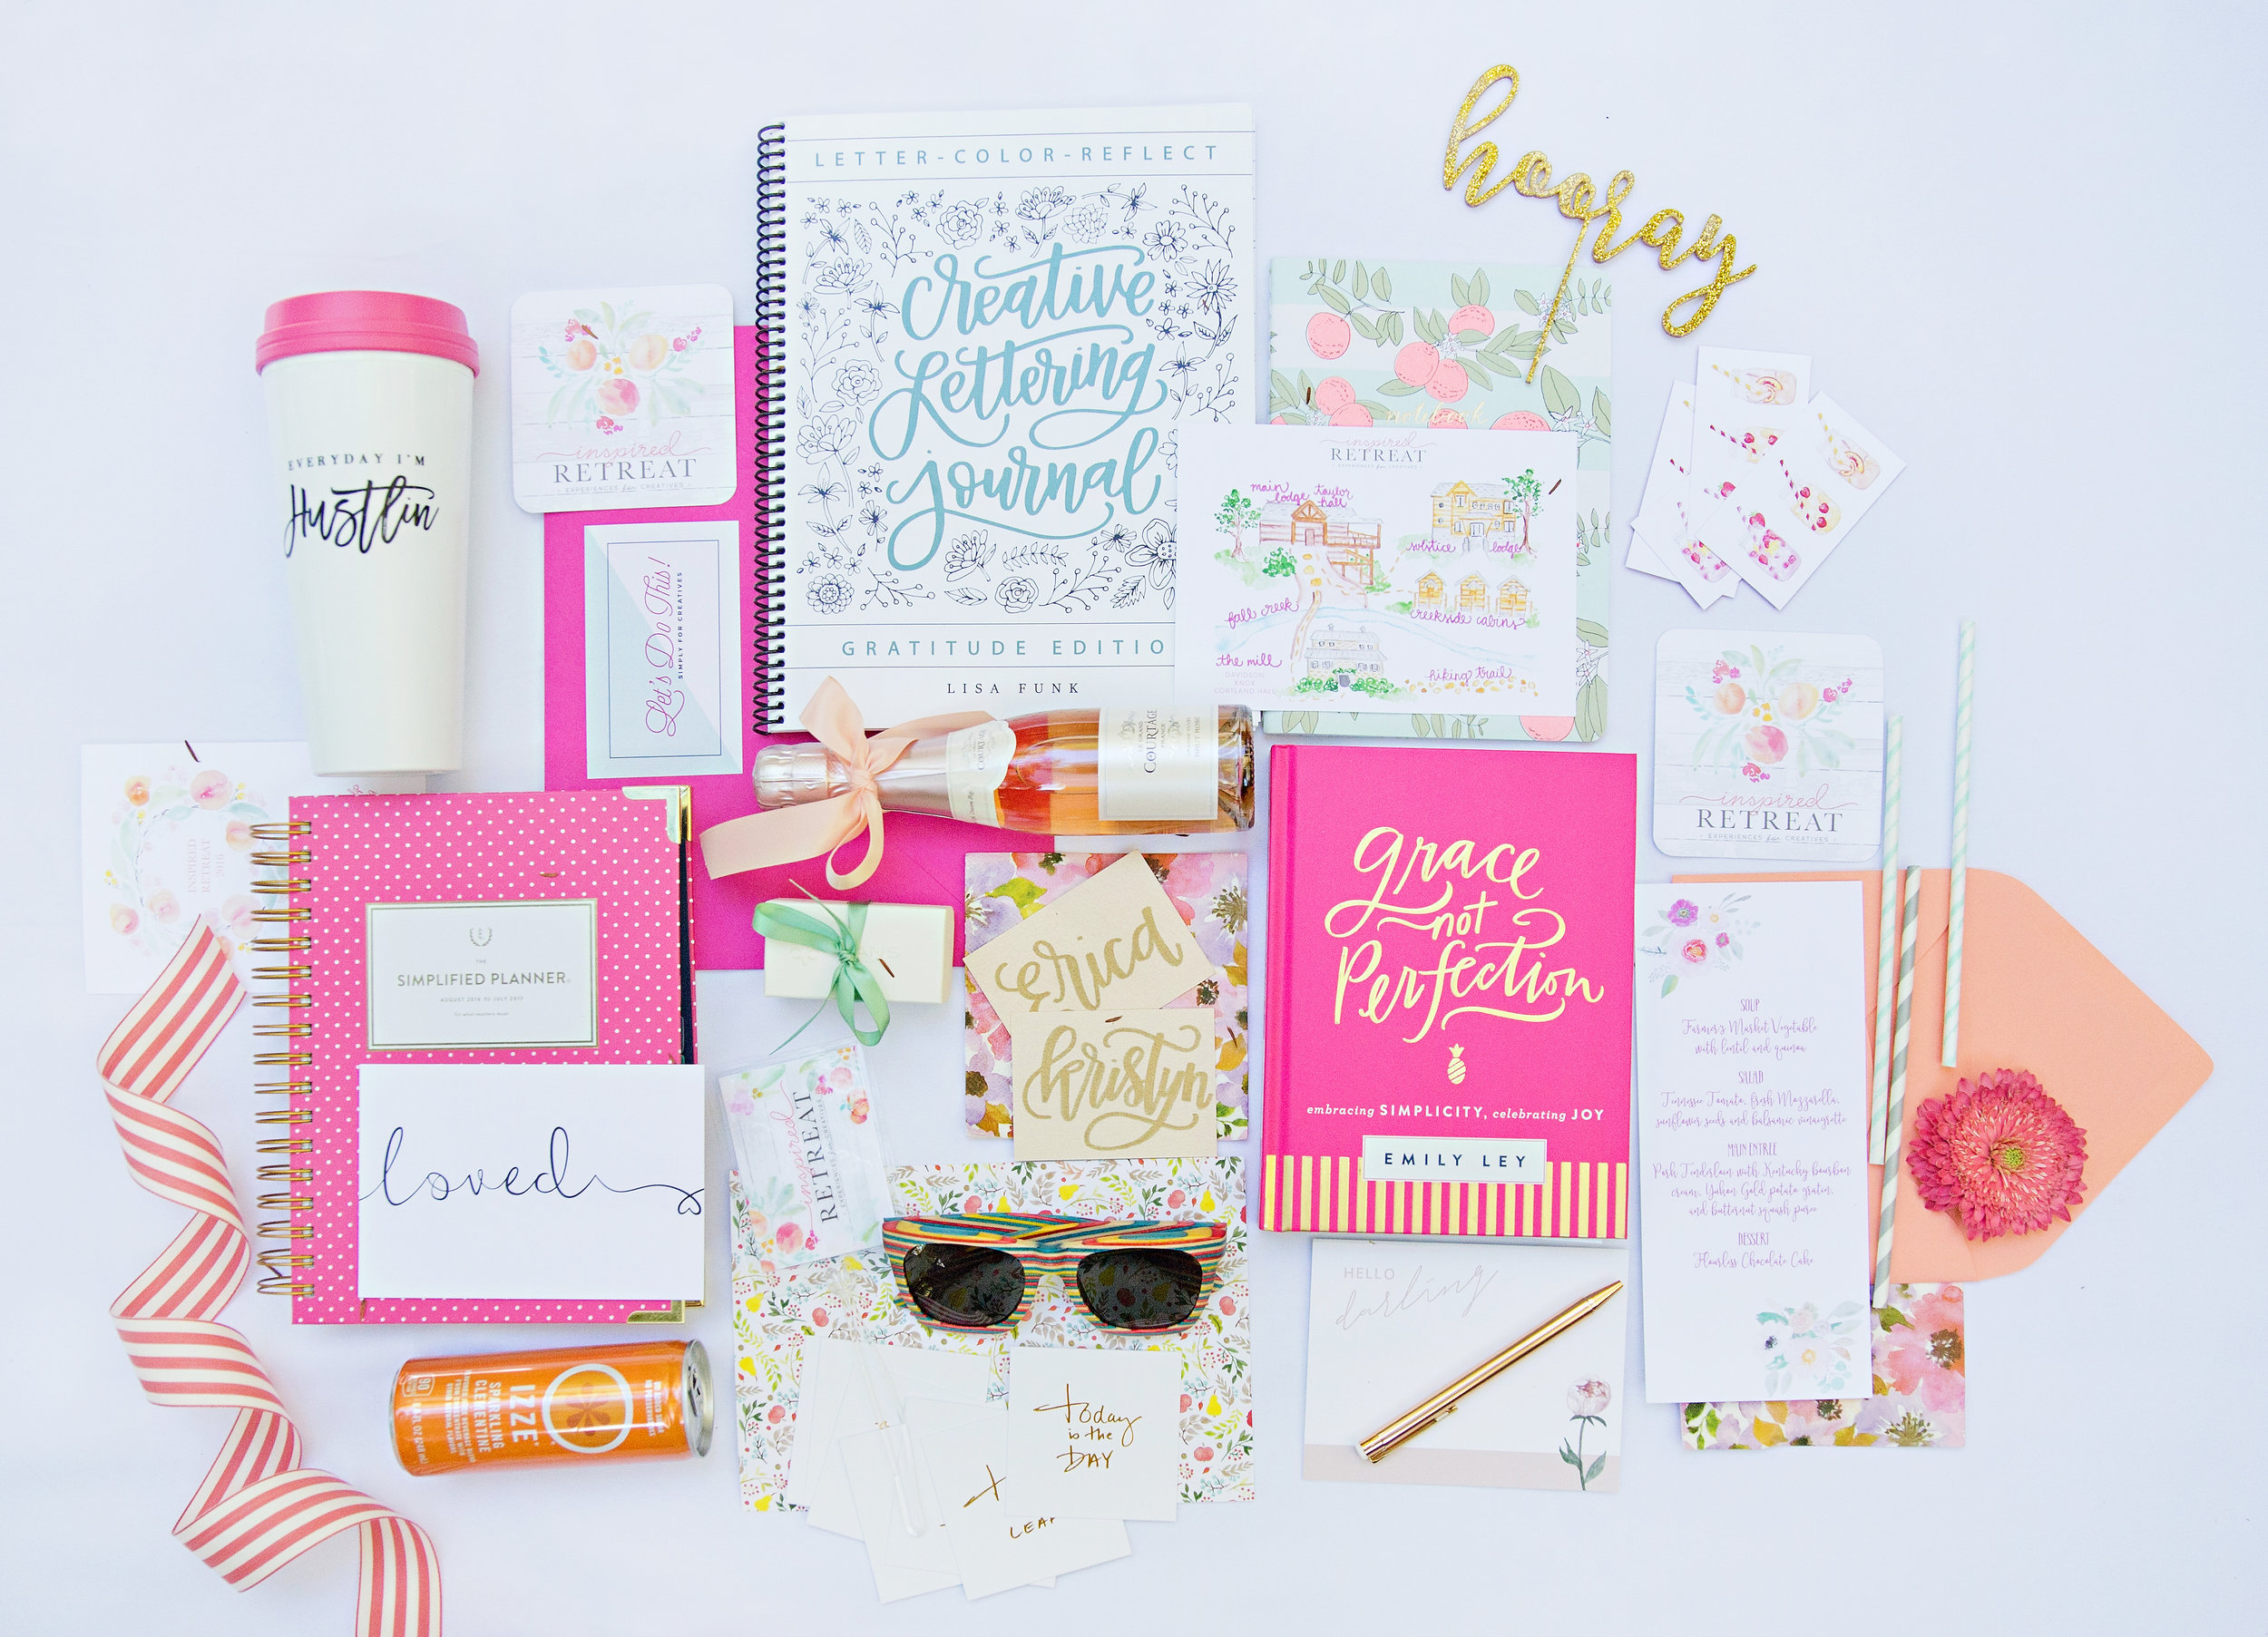 Swag Bag Inspired Retreat Emily Ley Simplified Planner and Grace Not Perfection